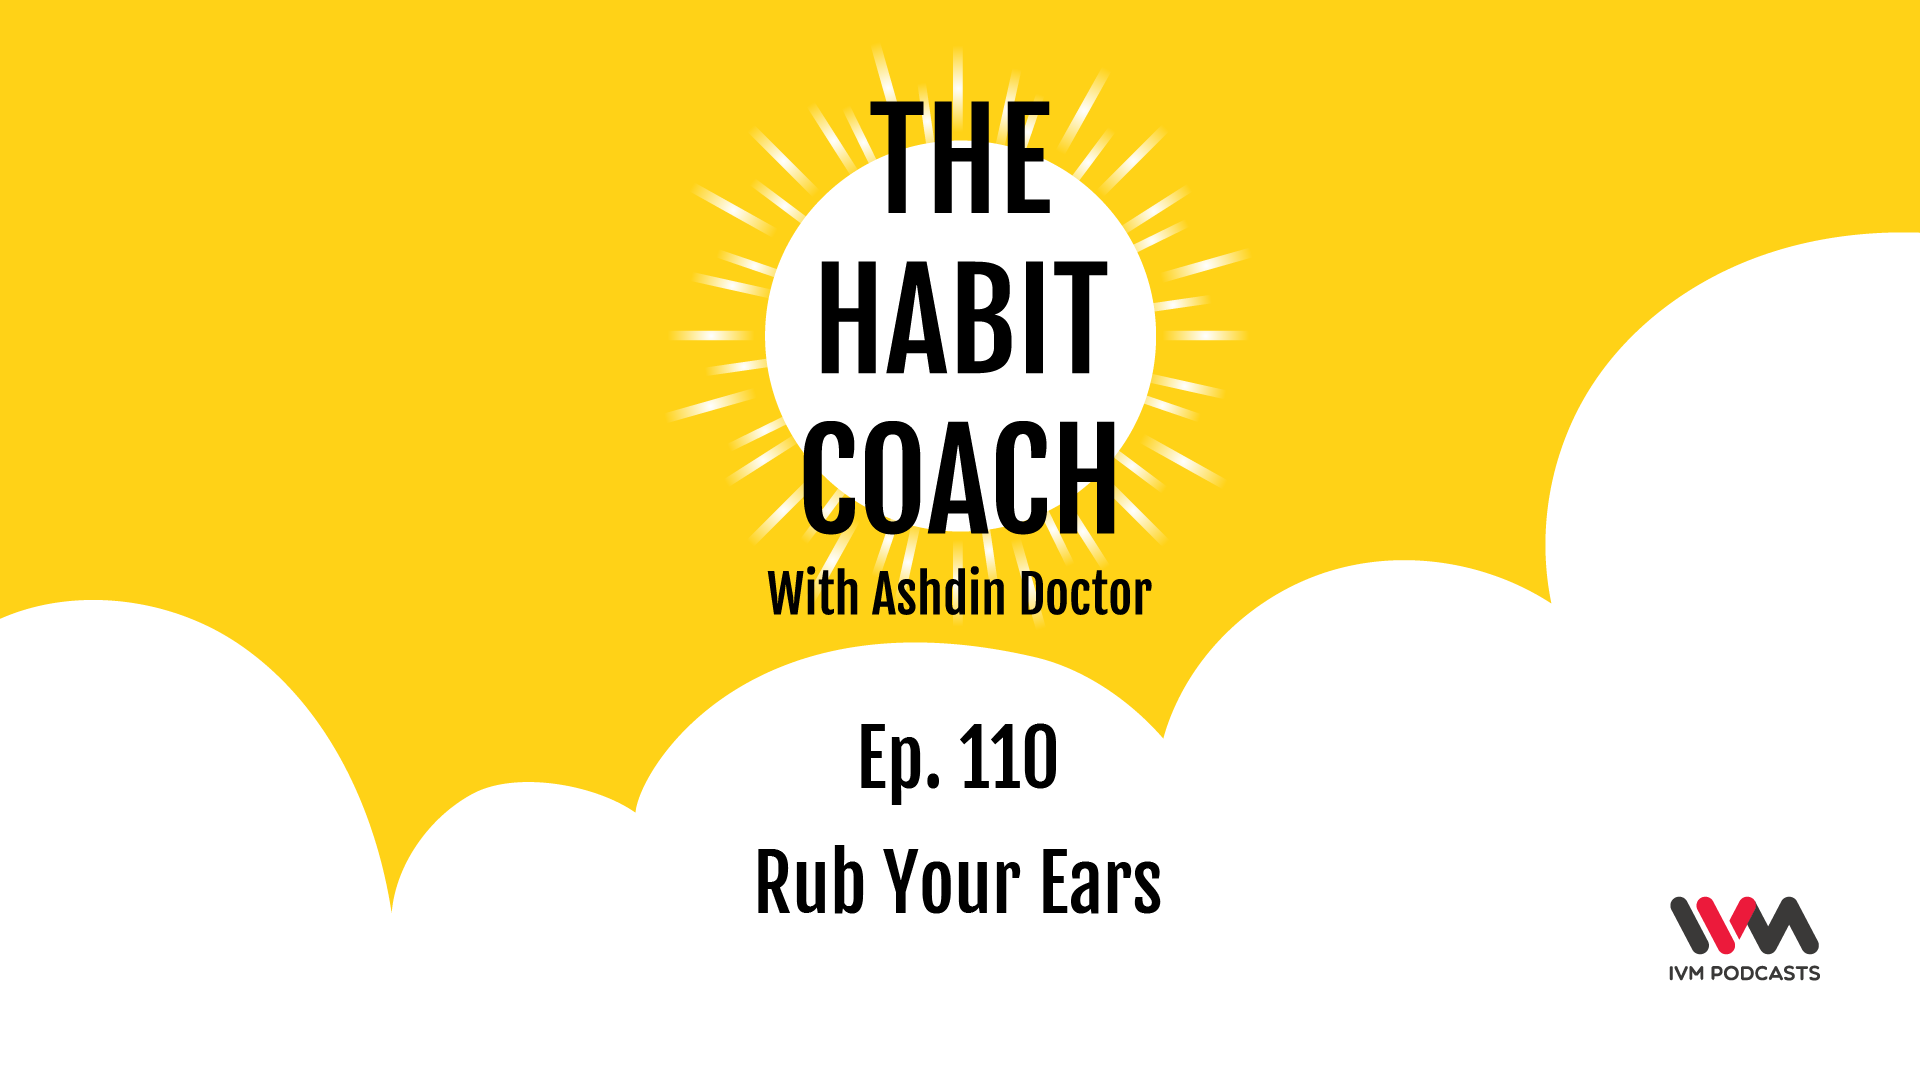 TheHabitCoachEpisode110.png